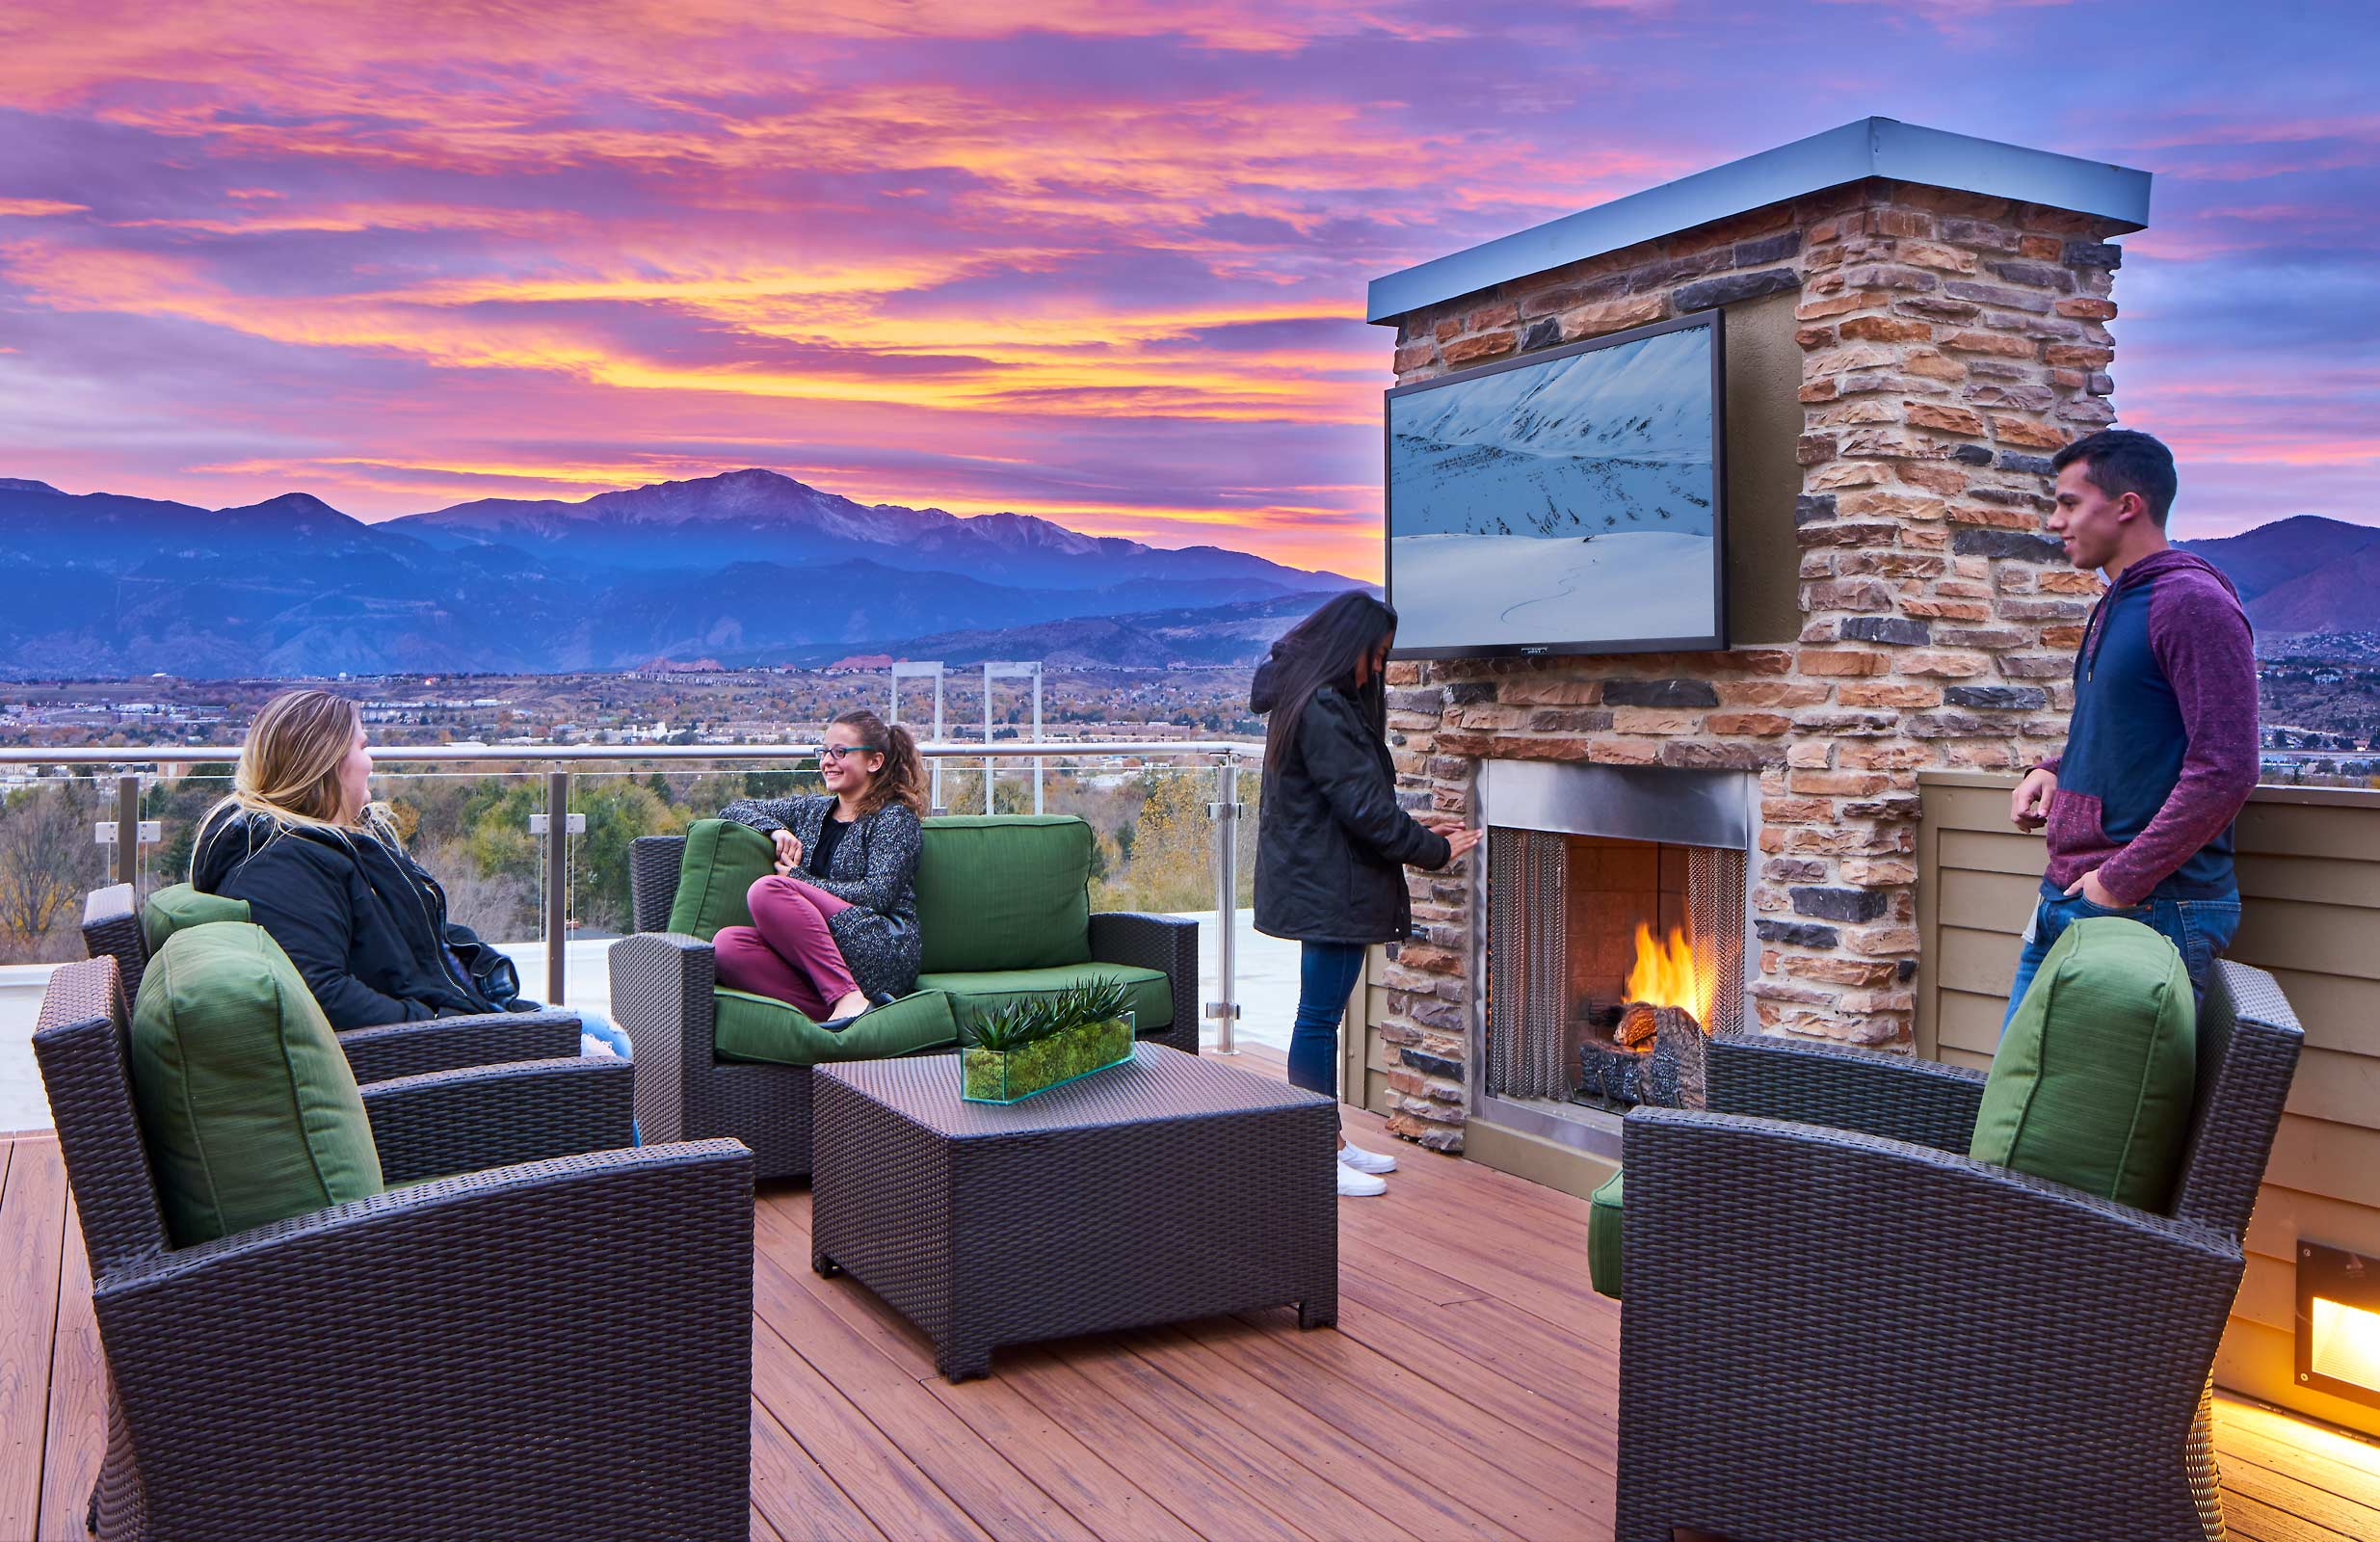 West-Edge-CO-SP-10-26-17Roof-Deck-Dusk-Web.jpg